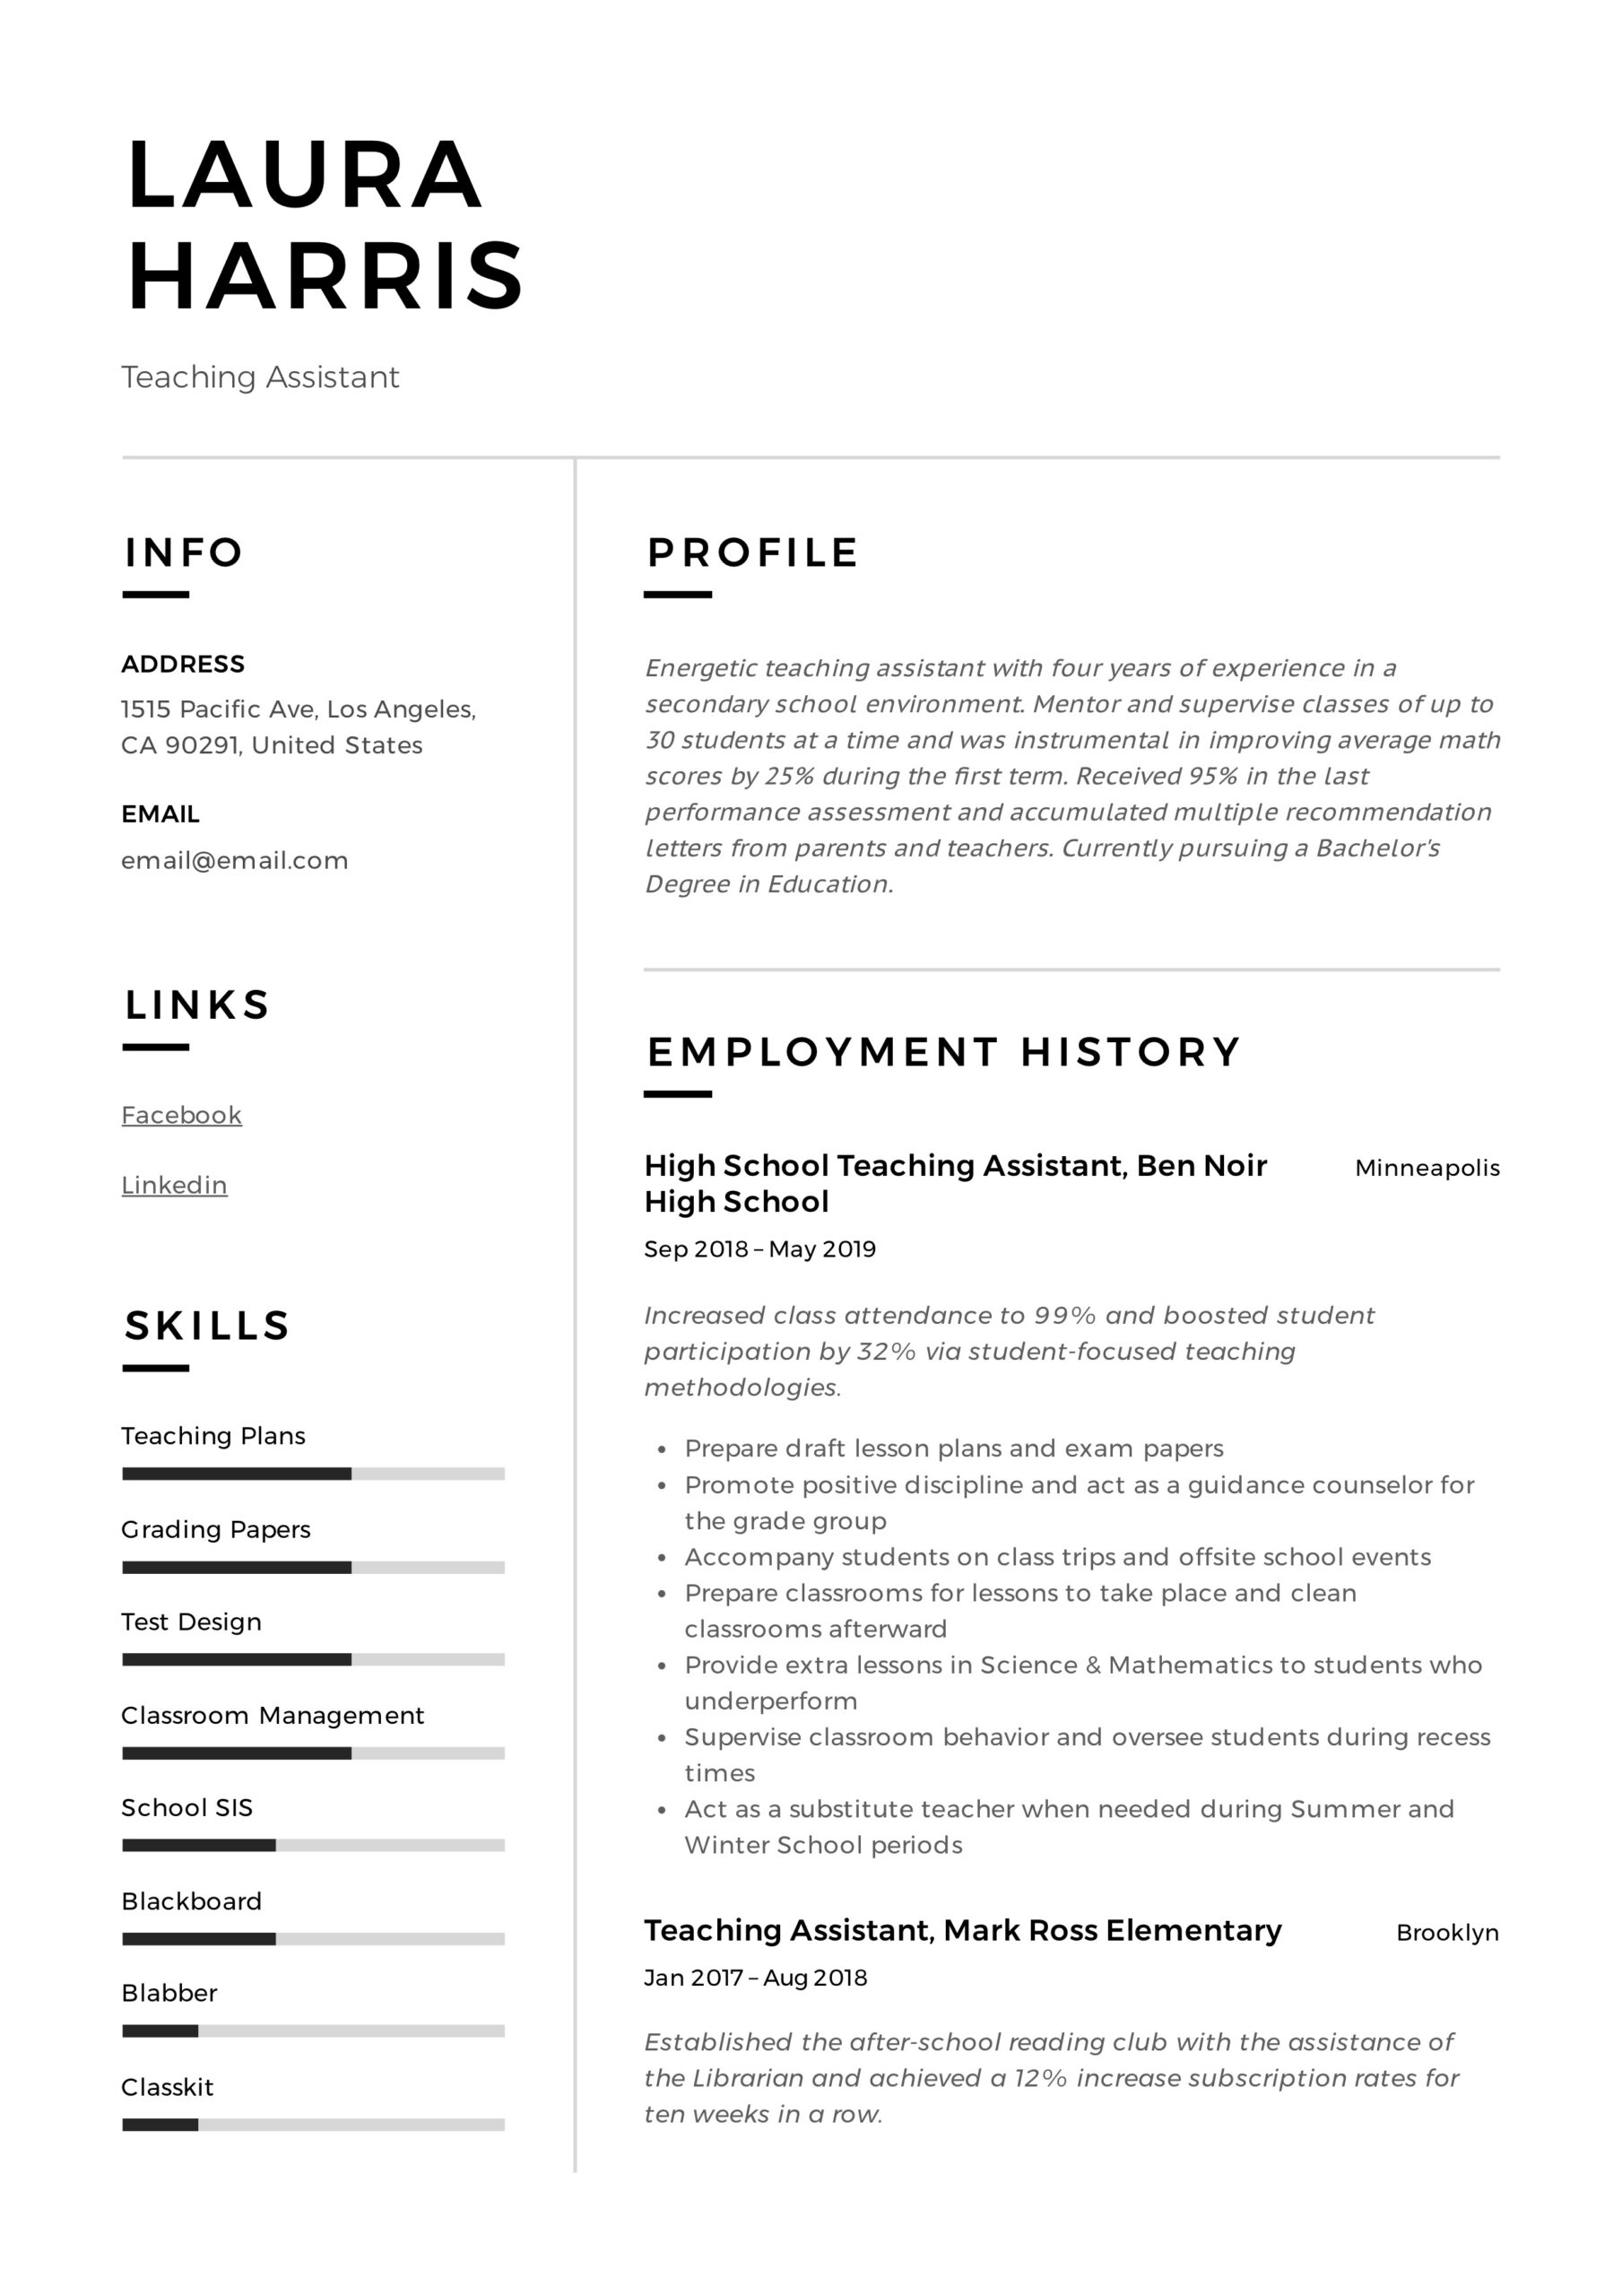 teaching assistant resume writing guide templates pdf paraprofessional examples template Resume Paraprofessional Resume Examples